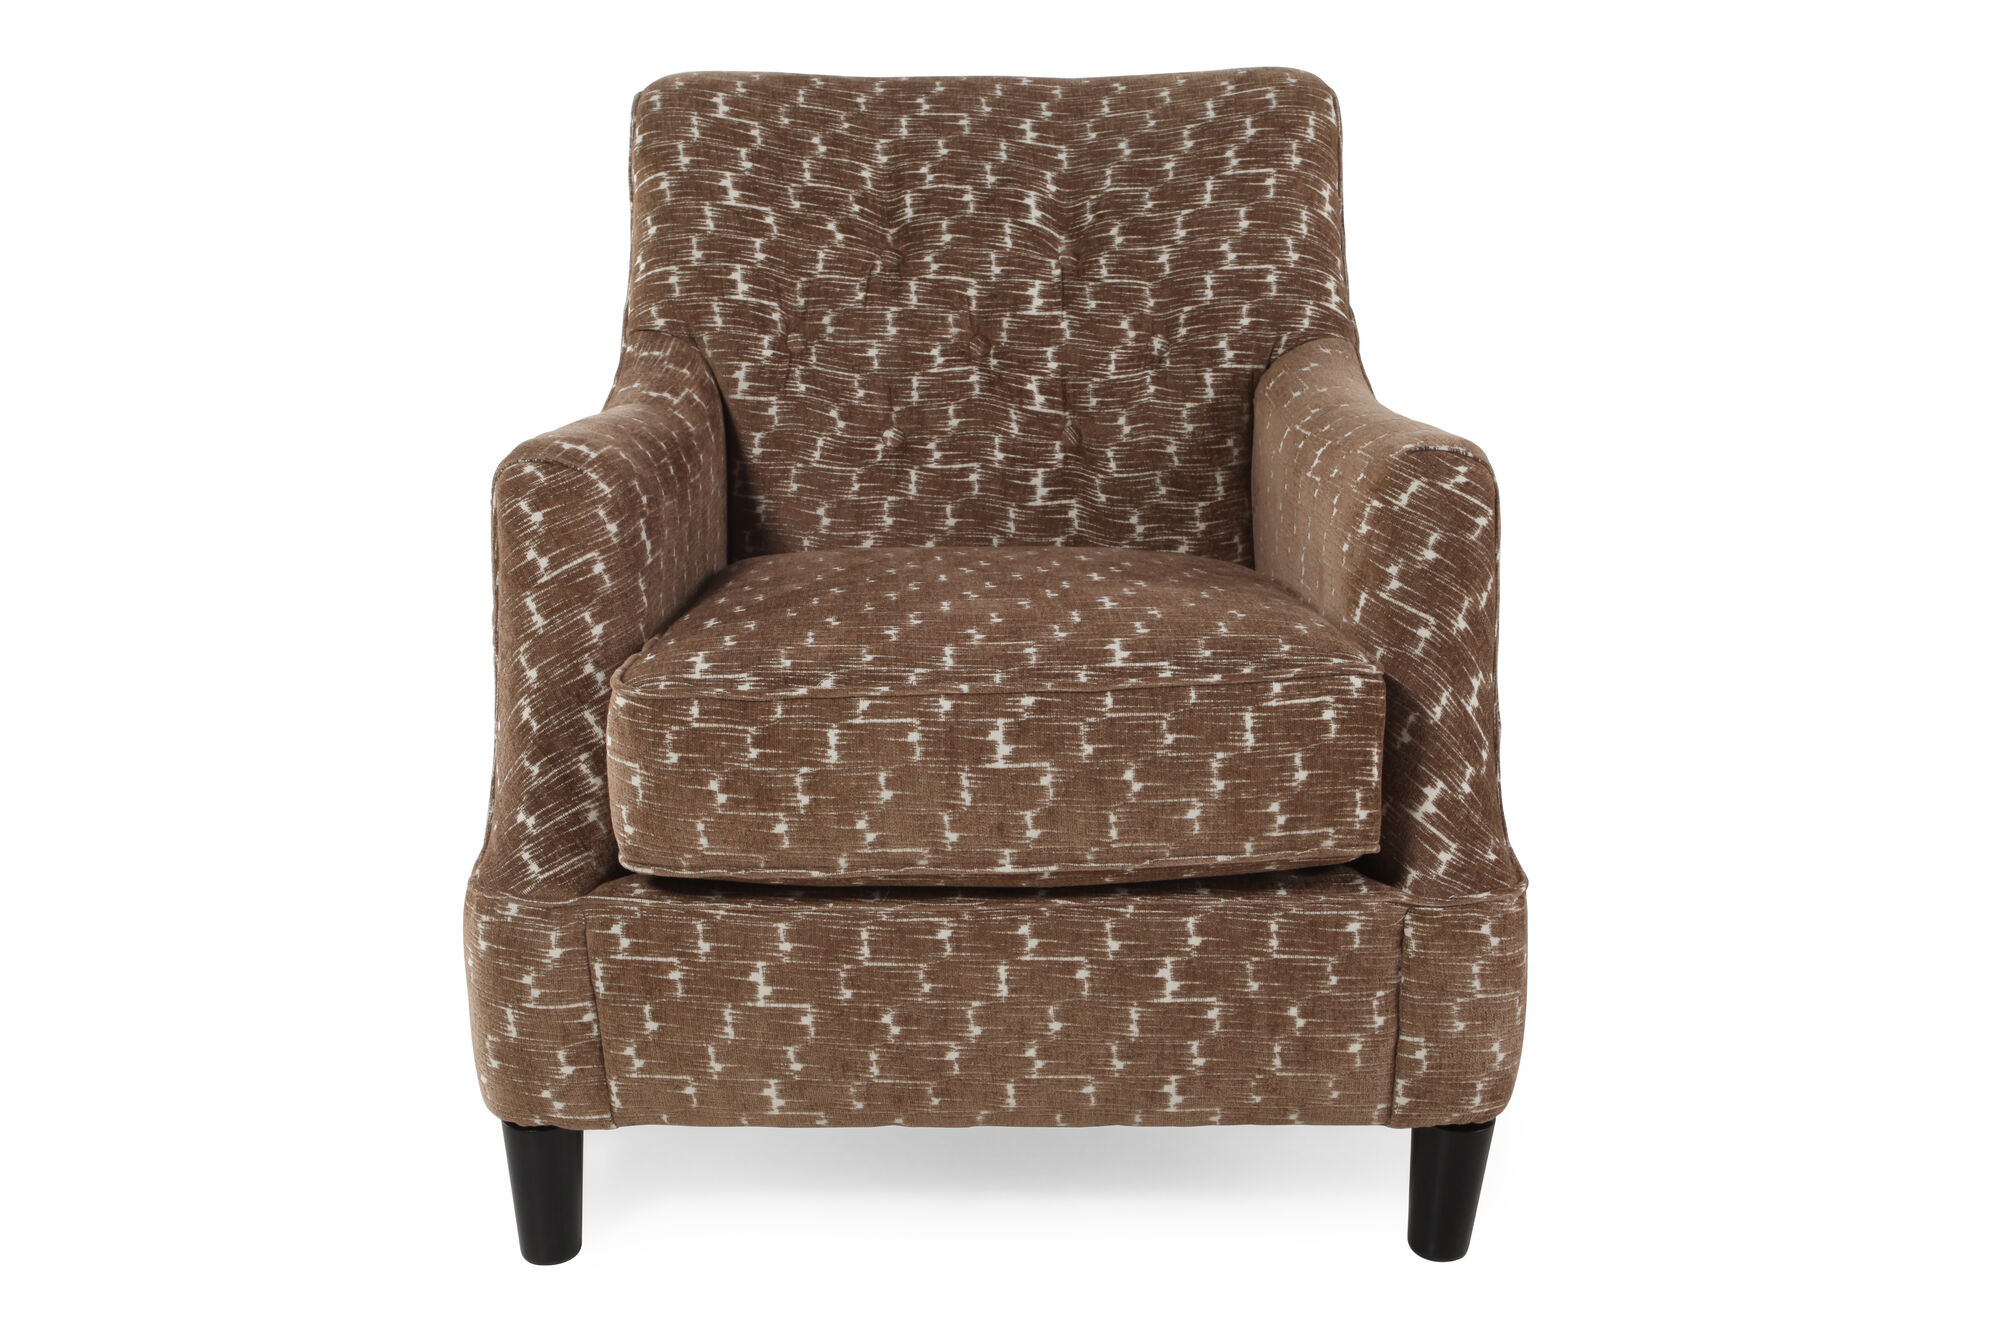 Button tufted microfiber 31 accent chair in cocoa mathis brothers furniture